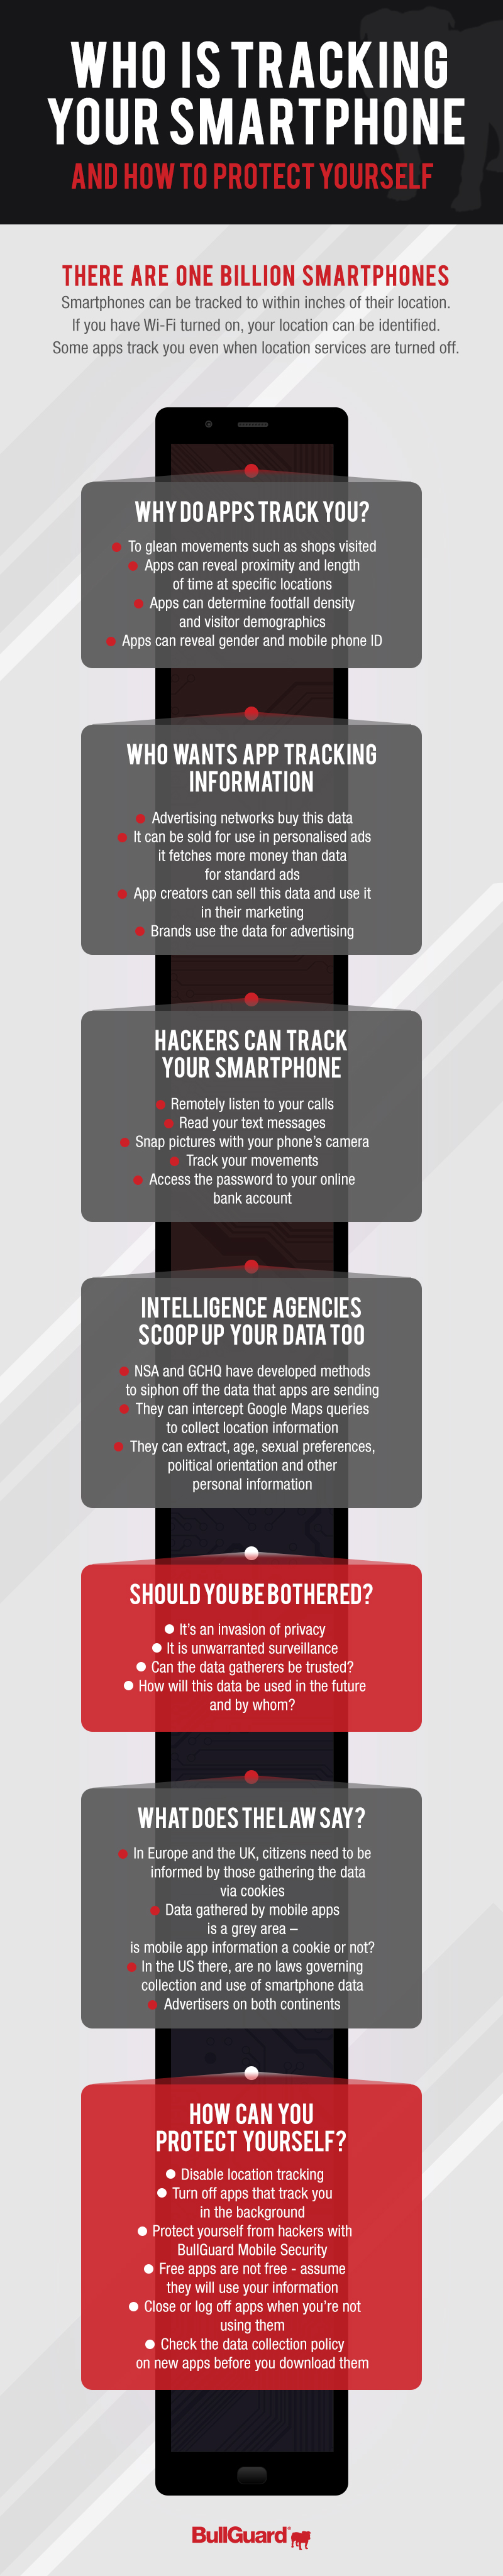 Who is tracking your smartphone? [INFOGRAPHIC] | Blog